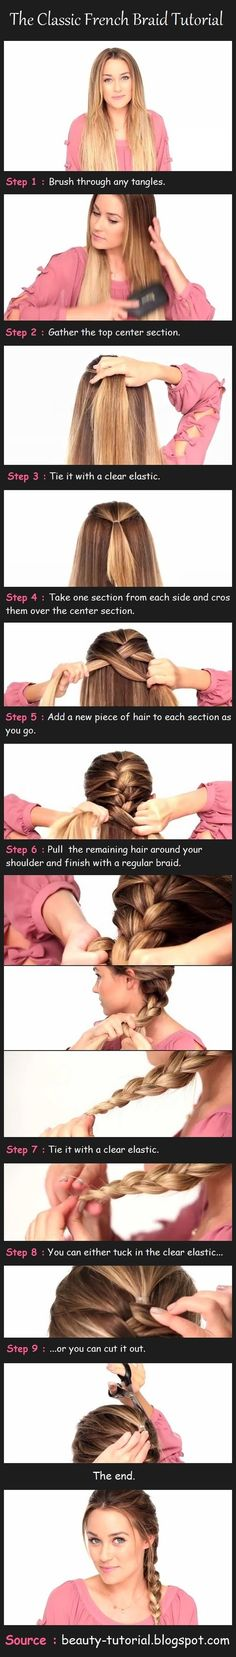 French Braiding for Dummies. Might want to learn a decent braid before baby girl comes